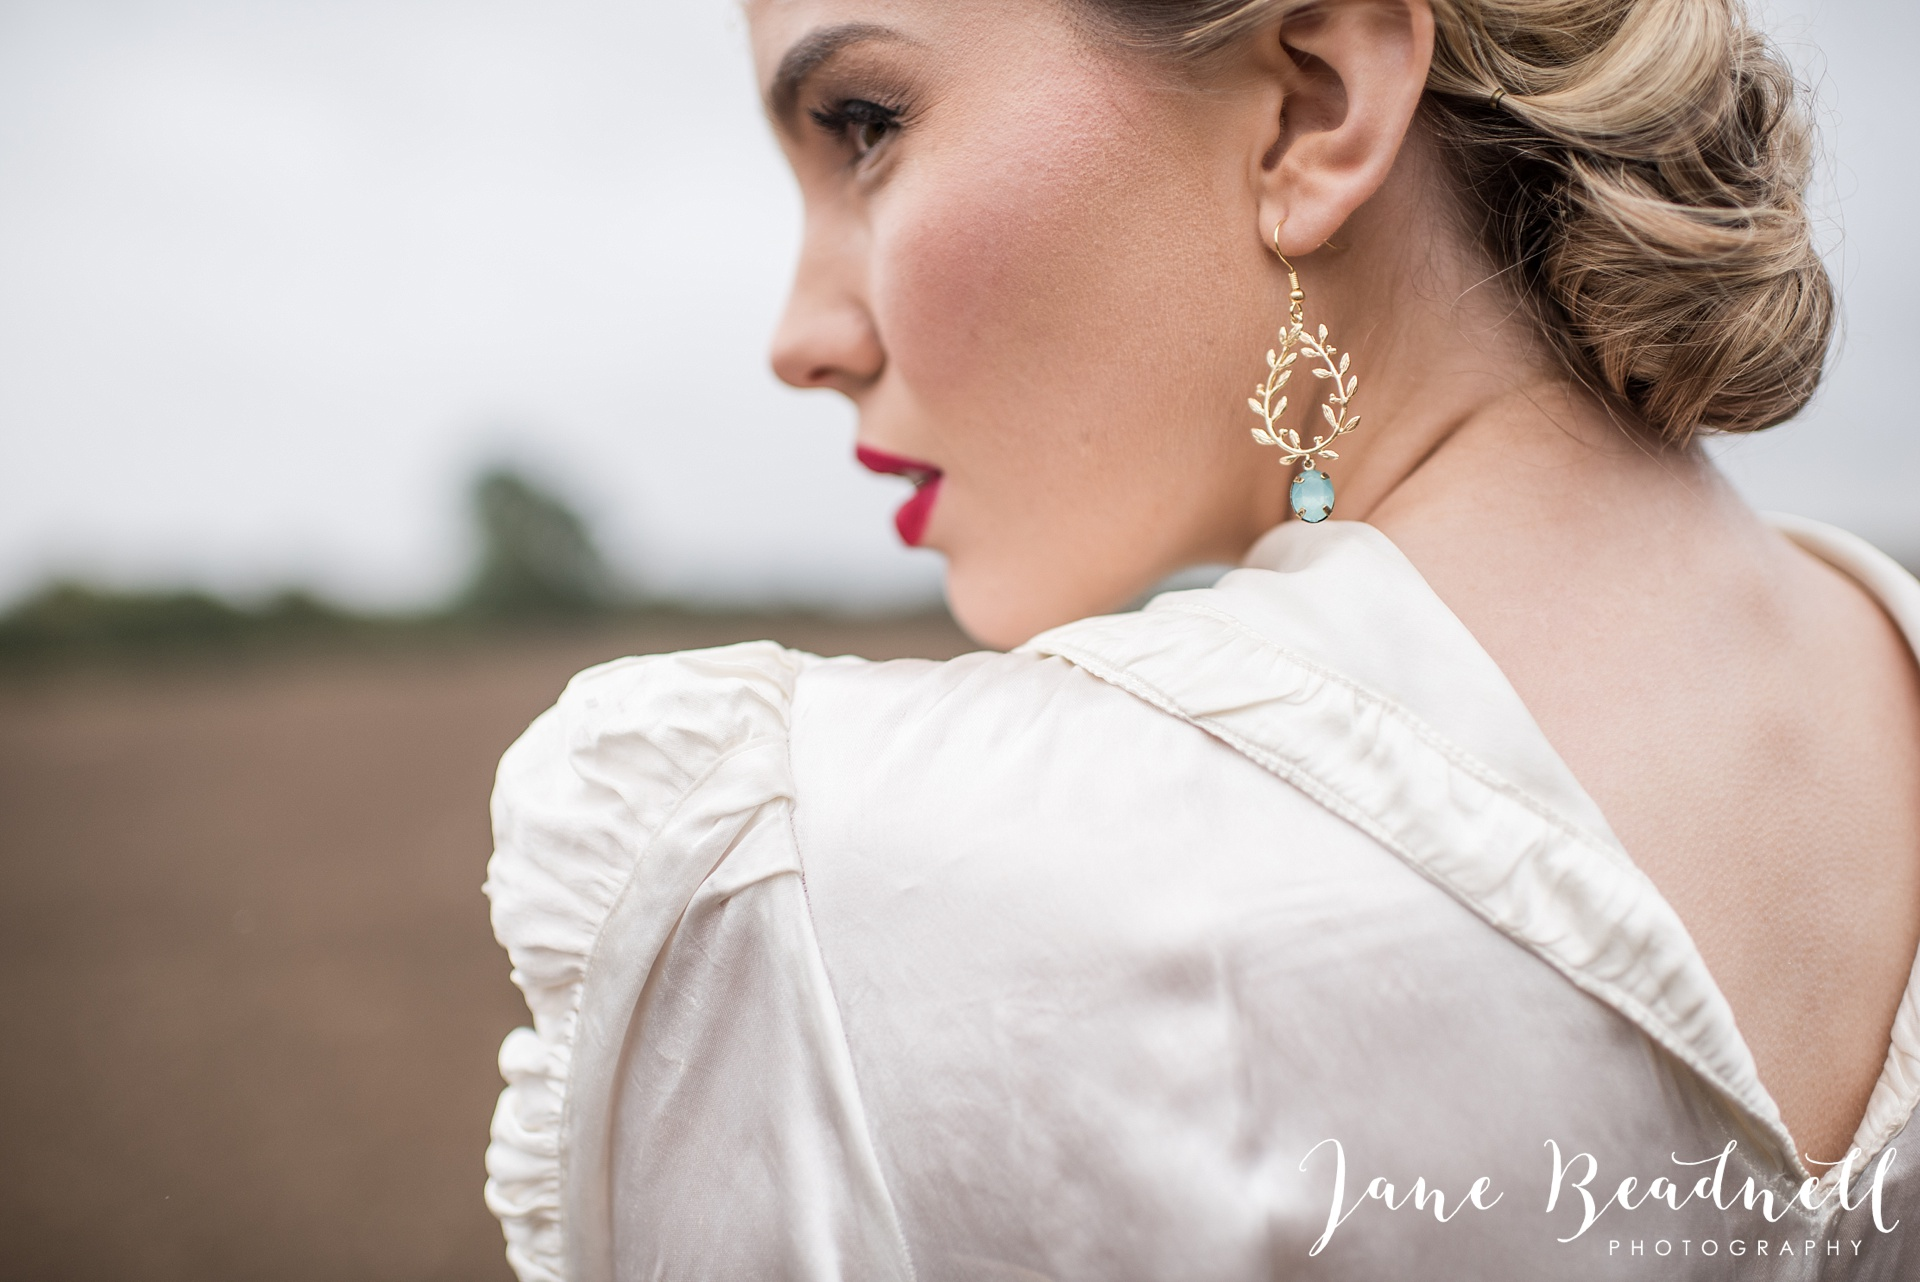 fine-art-wedding-photographer-jane-beadnell-photography-yorkshire-wedding-photographer_0065